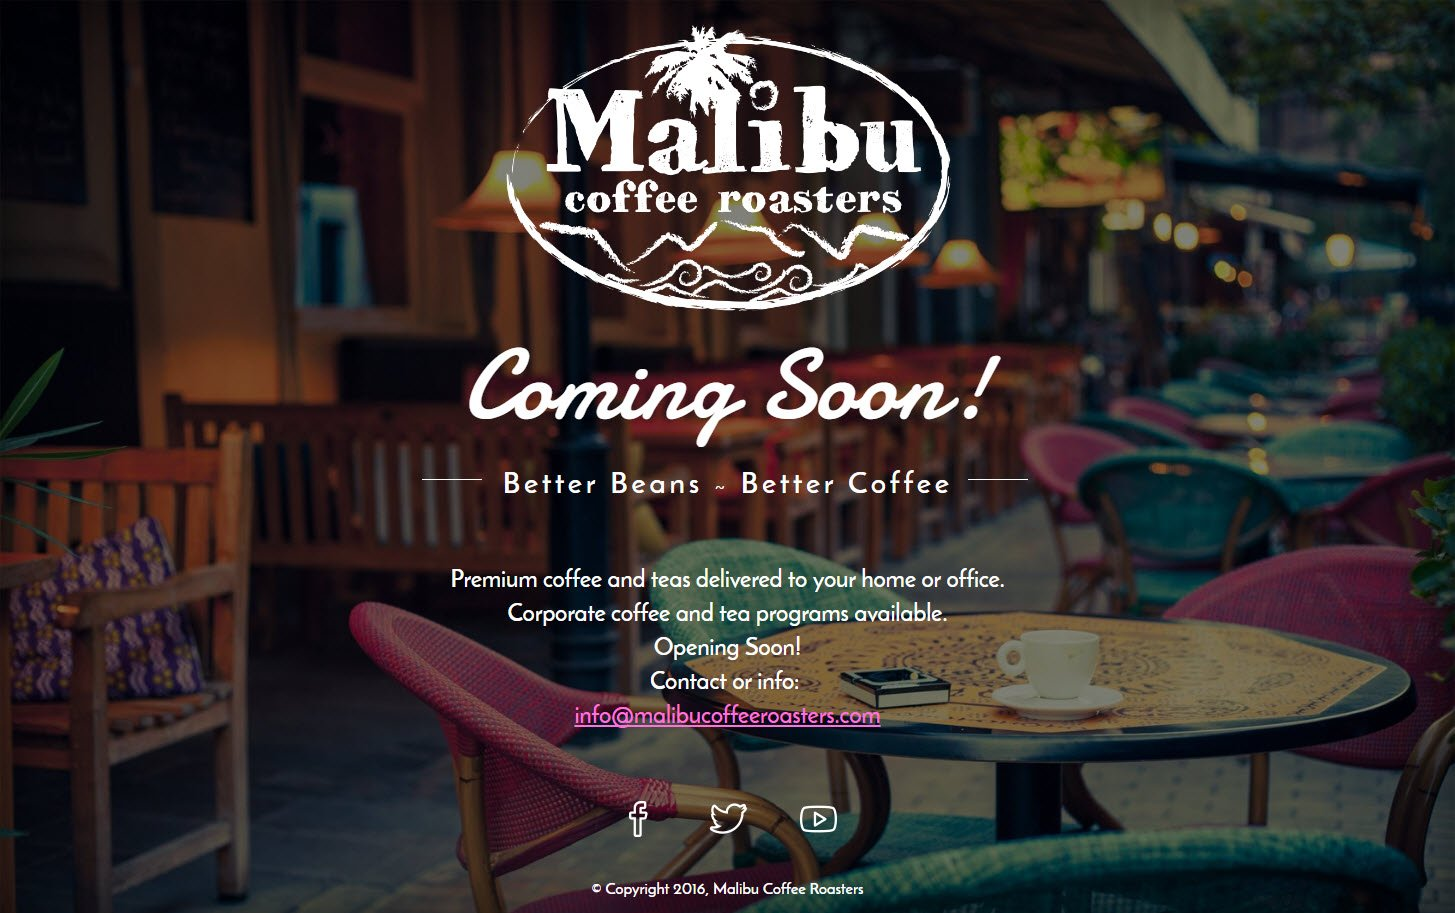 Malibu Coffee Roasters